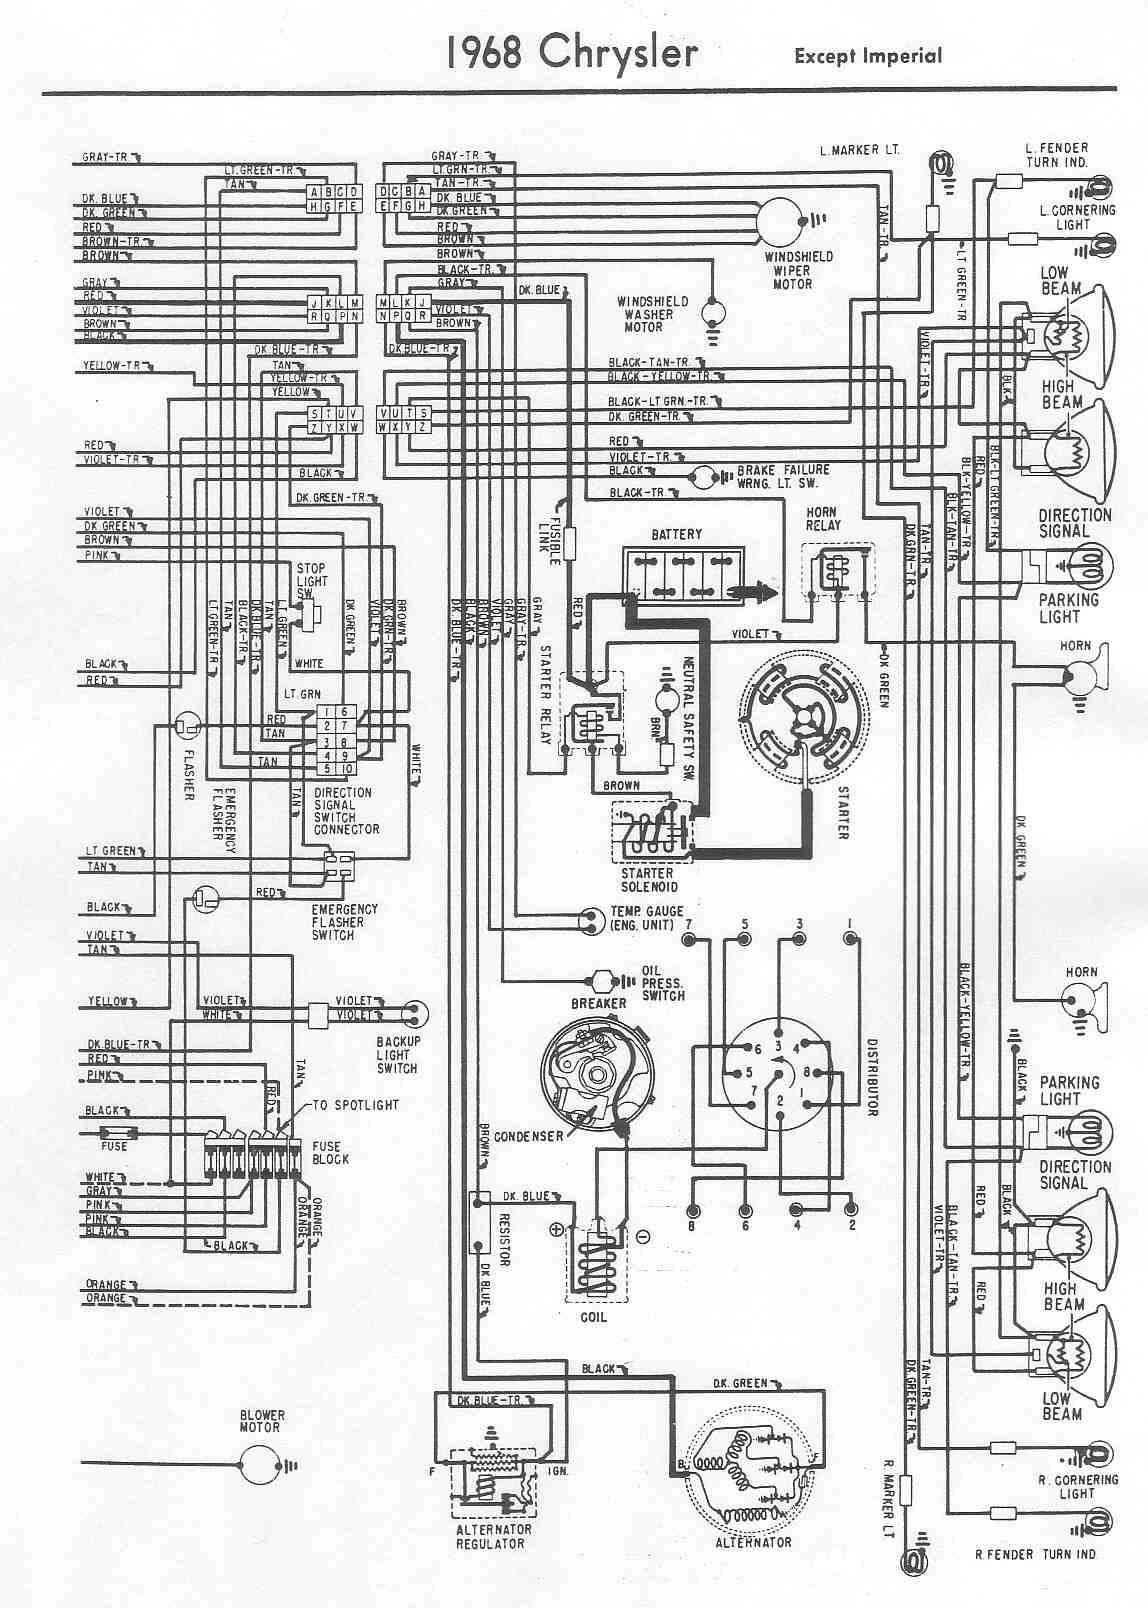 electrical wiring diagram of 1968 chrysler all model?t=1508393603 chrysler car manuals, wiring diagrams pdf & fault codes 1966 chrysler new yorker wiring diagram at n-0.co